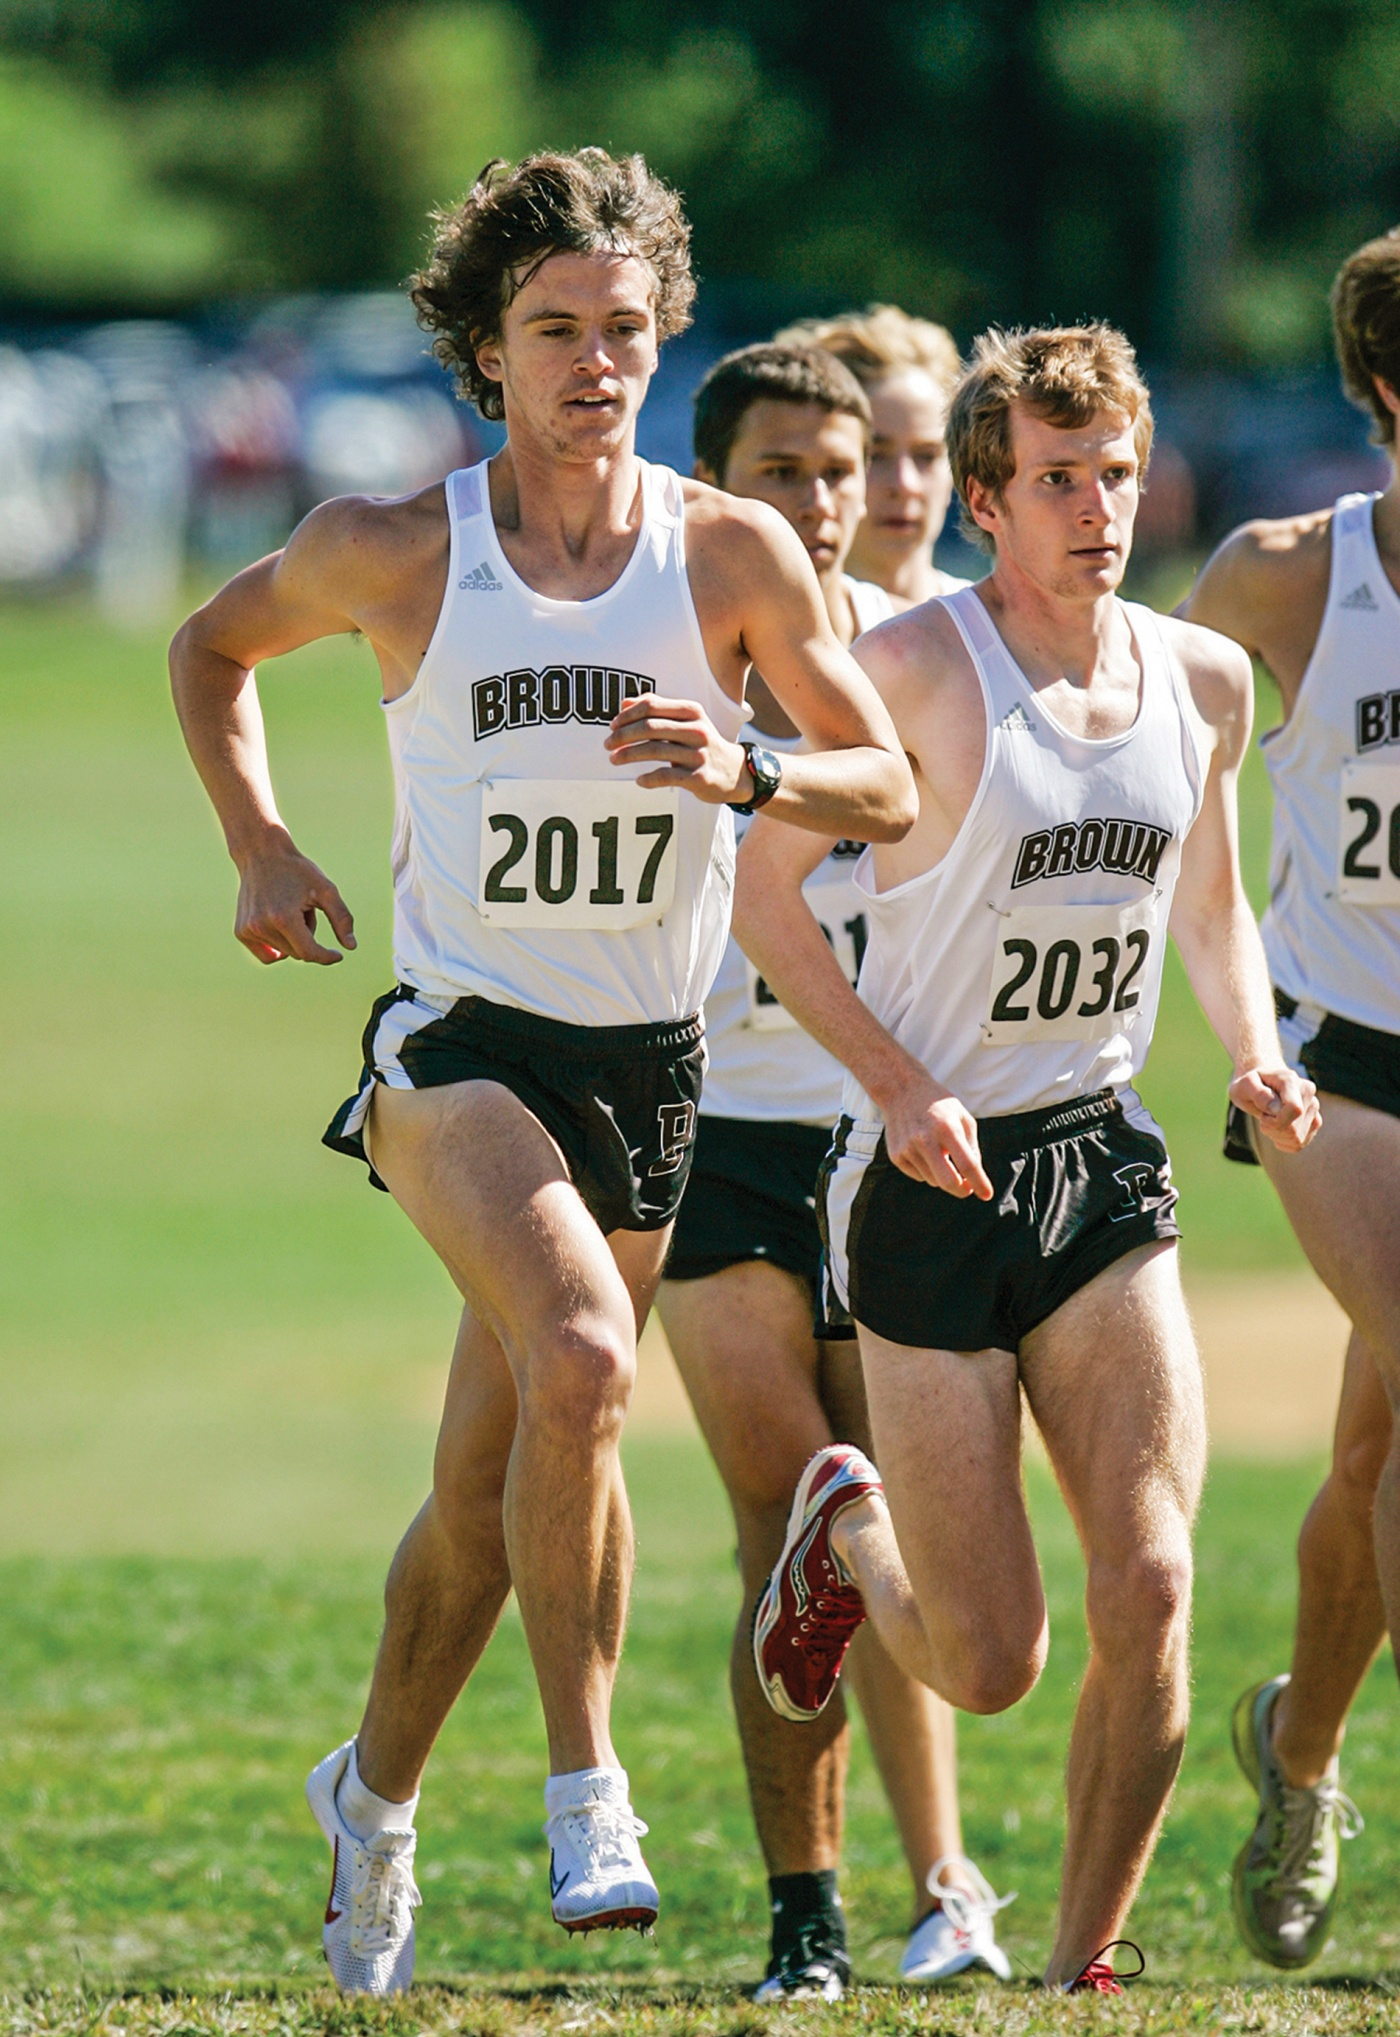 Runner Kevin Cooper '15 in a cross-country race